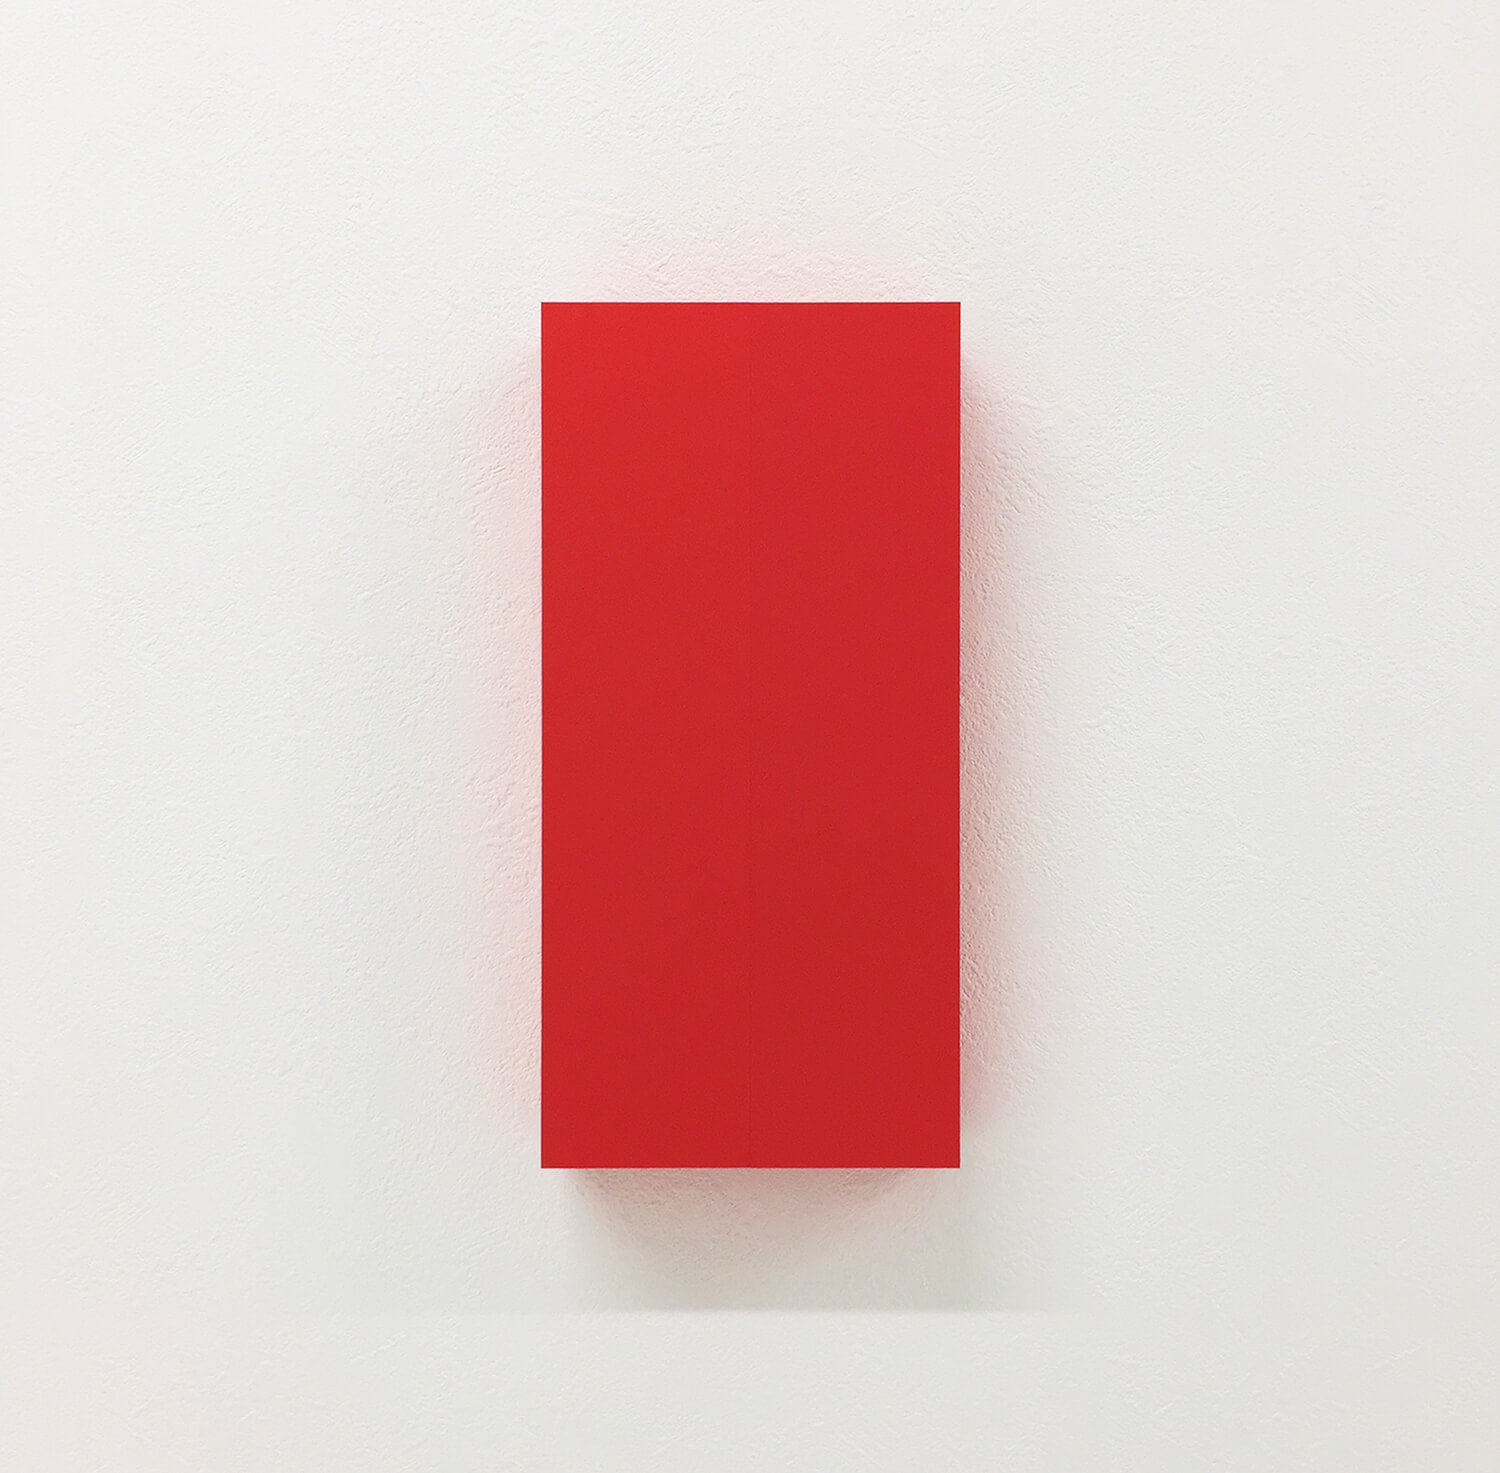 half note_red, silkscreen on perspex, 24 x 12 x 4 cm, 2018